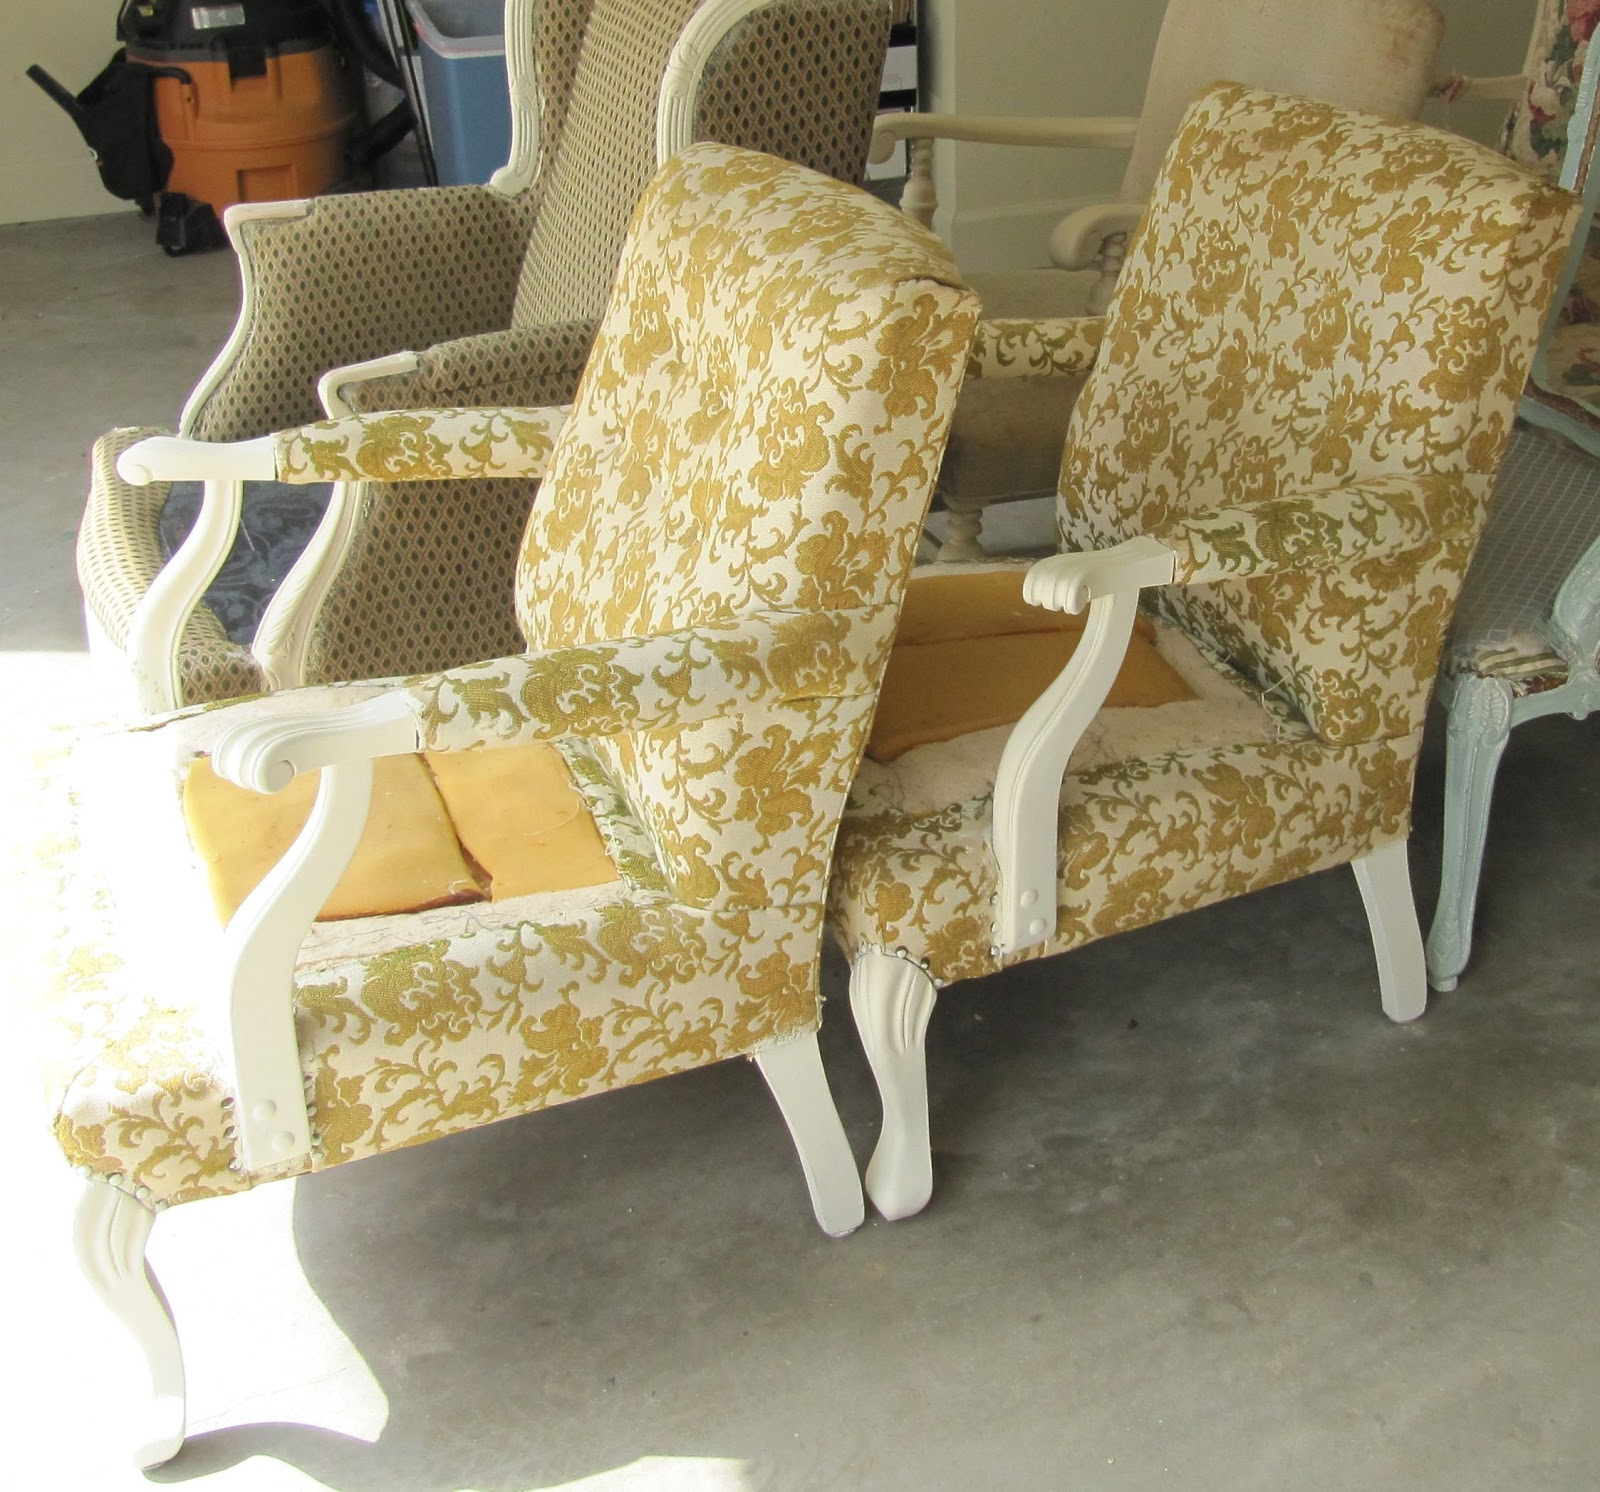 Wydeven Designs: Annie Sloan Chalk Paint Chairs Project